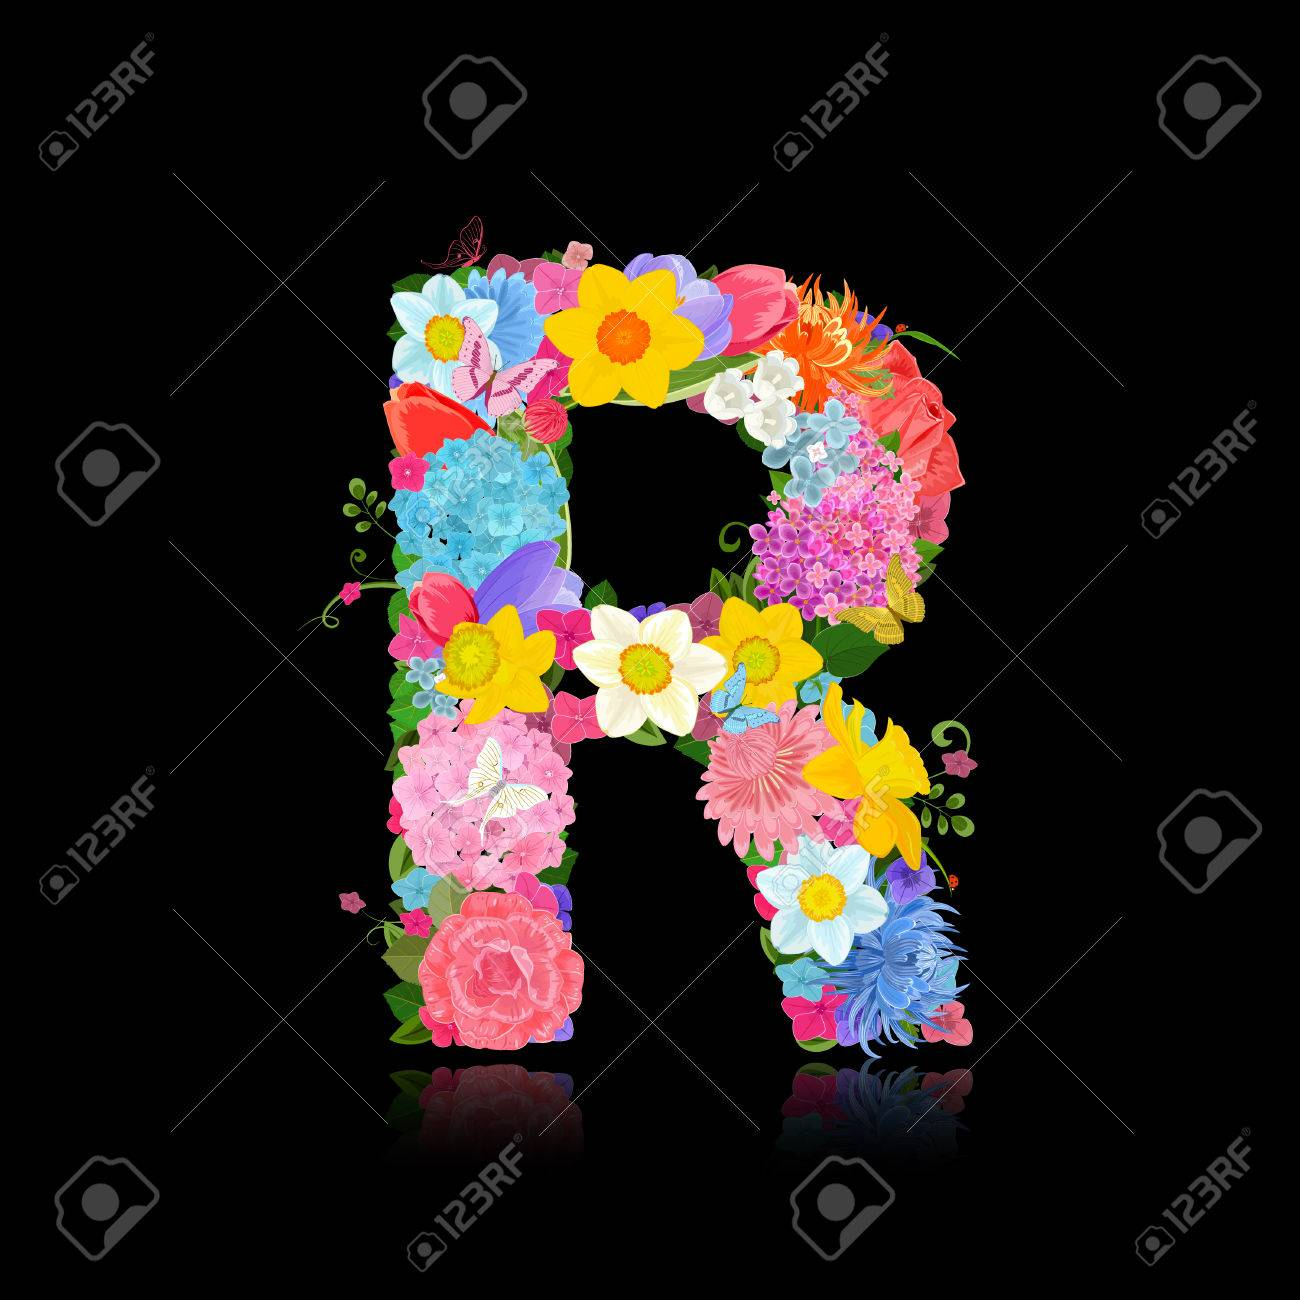 Fancy letter of beautiful flowers on black background r royalty free fancy letter of beautiful flowers on black background r stock vector 63949899 altavistaventures Image collections